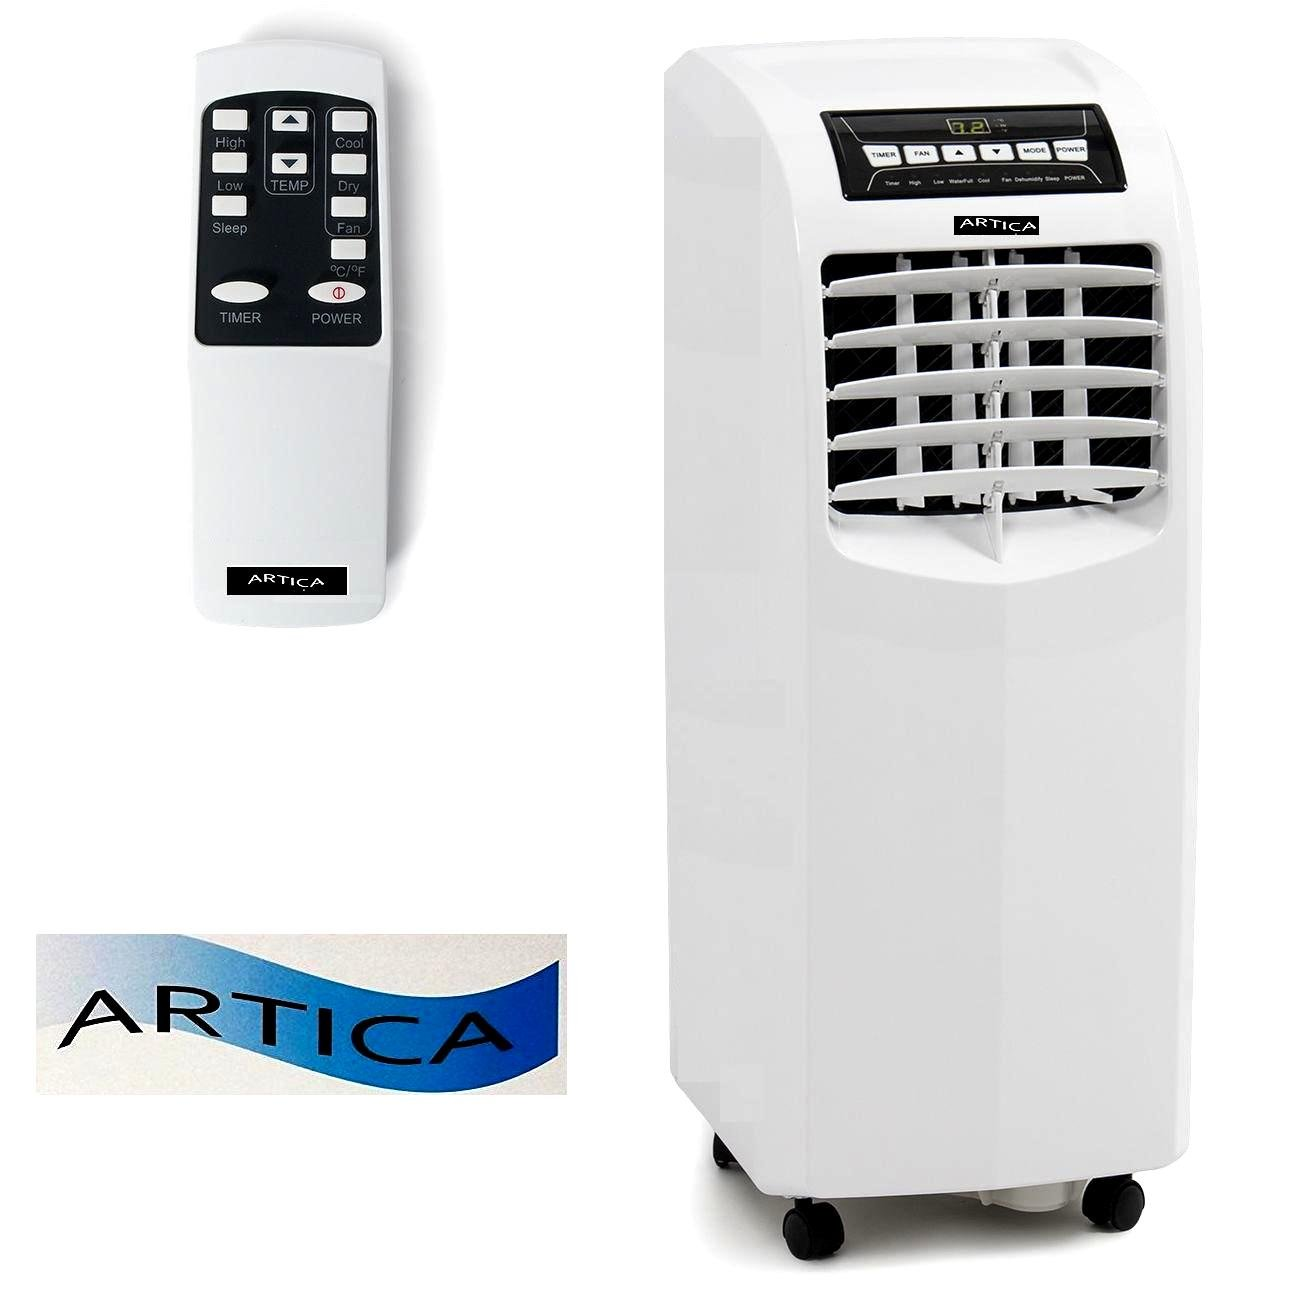 ARTICA USA ARC-10B 10,000 BTU Portable Air Conditioner / AC Extreme cool rooms with Remote Control, White 10000BTU by ARTICA USA